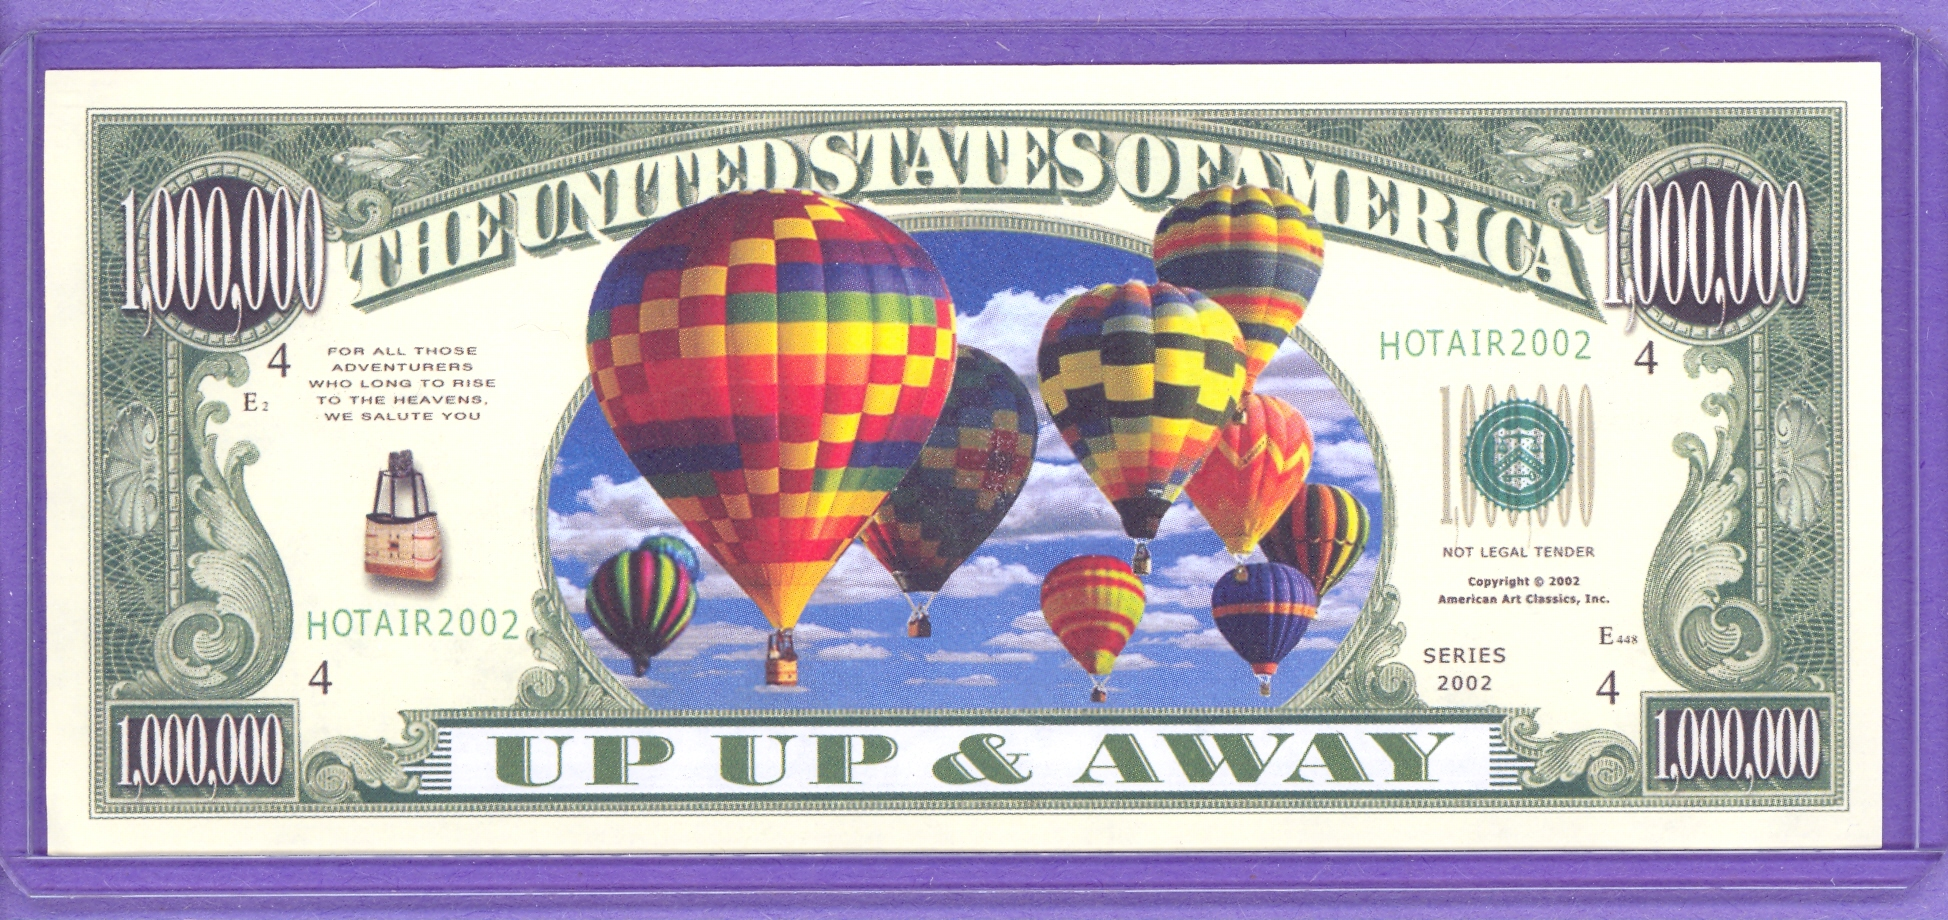 Hot Air Balloon $1,000,000 Fantasy Note